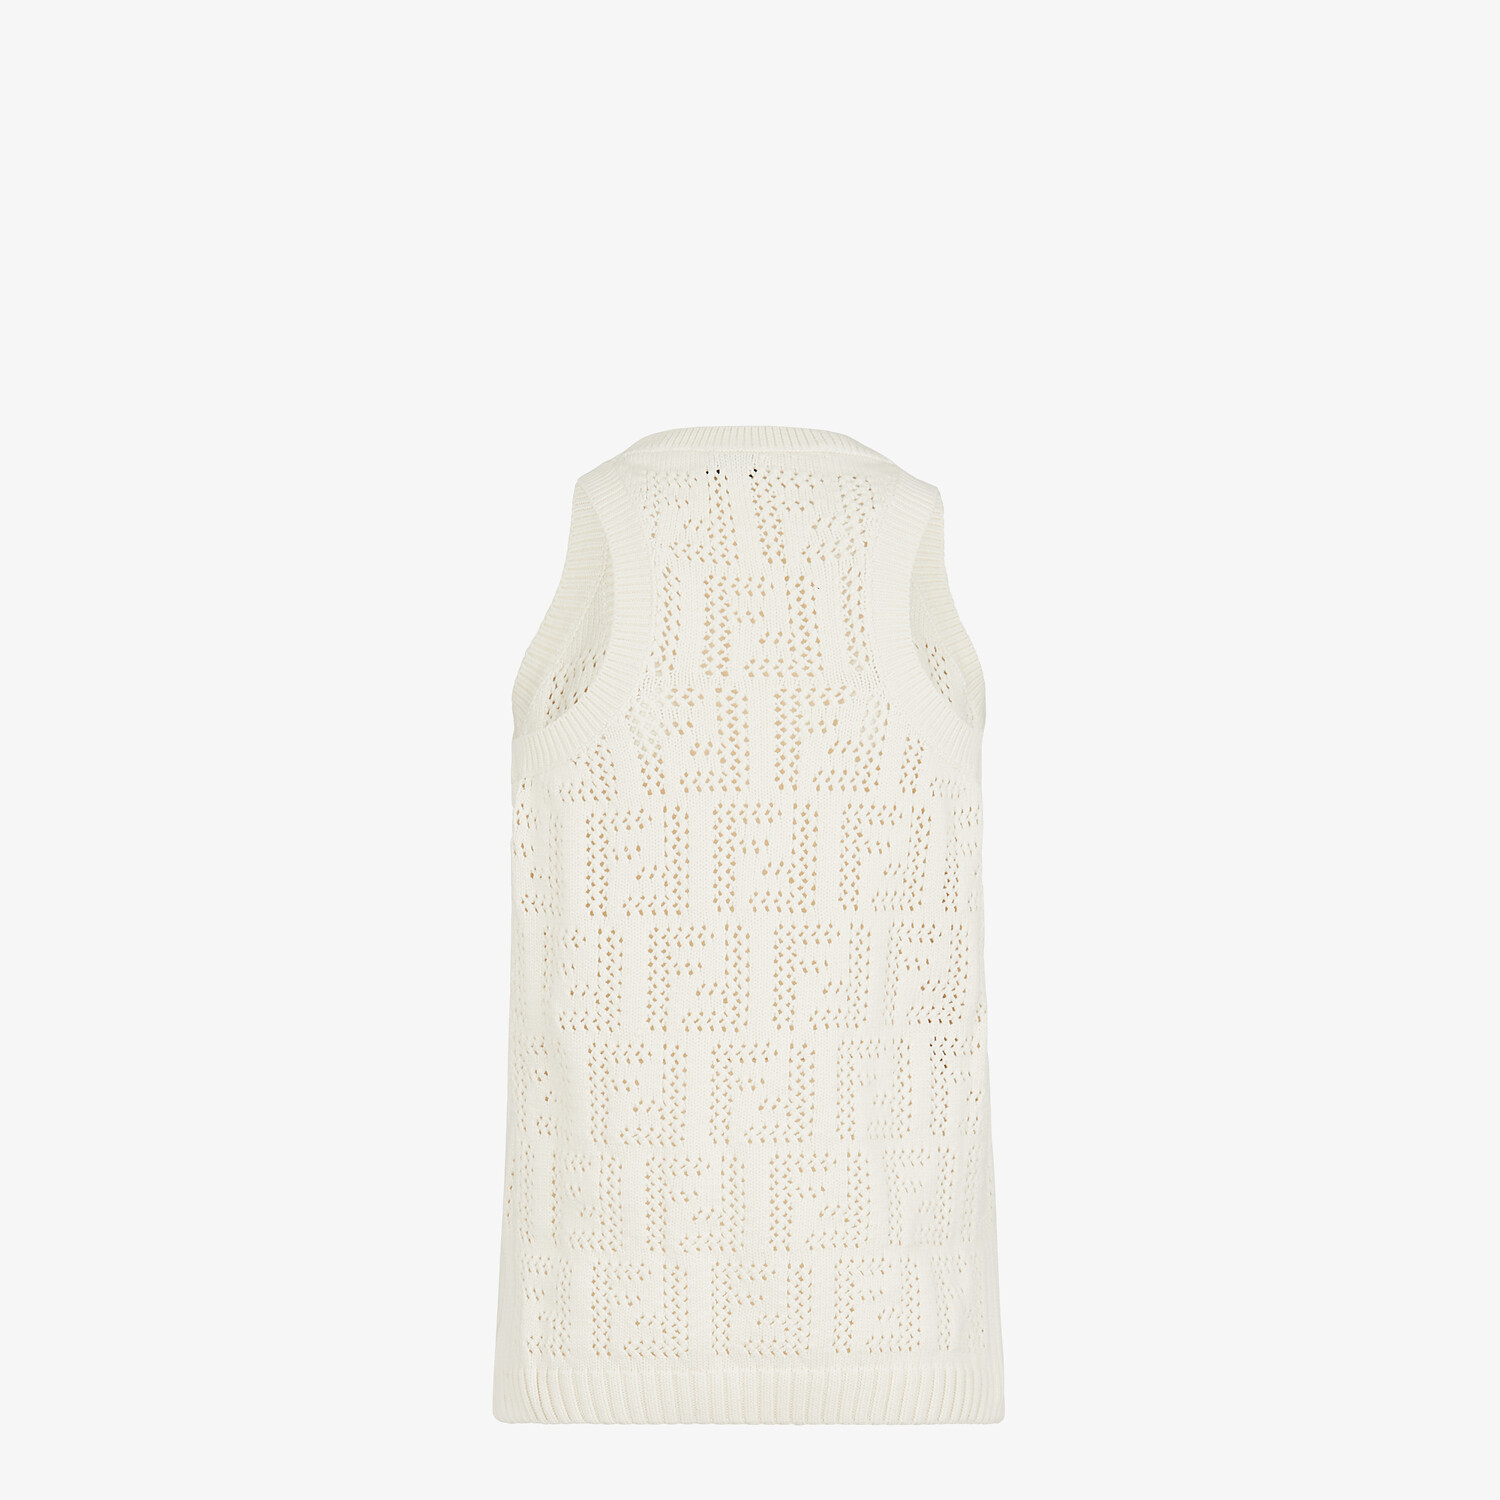 FENDI TANK TOP - White cotton tank top - view 2 detail